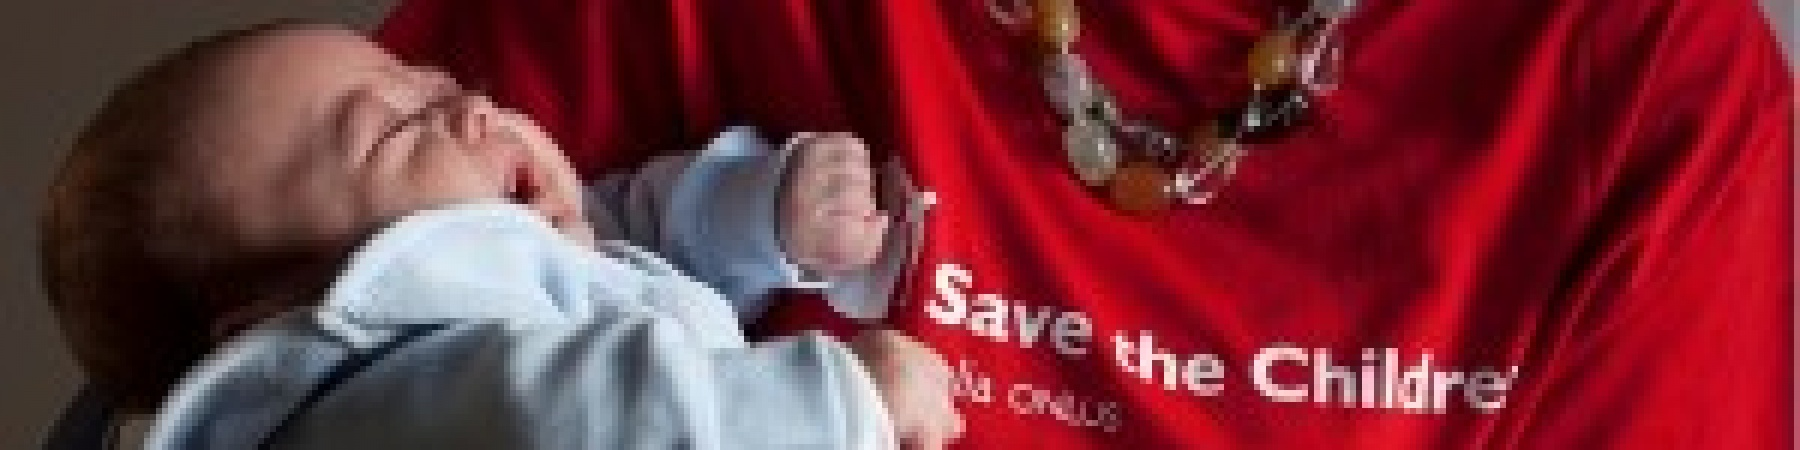 operatrice-save-the-children-tiene-in-braccio-neonato